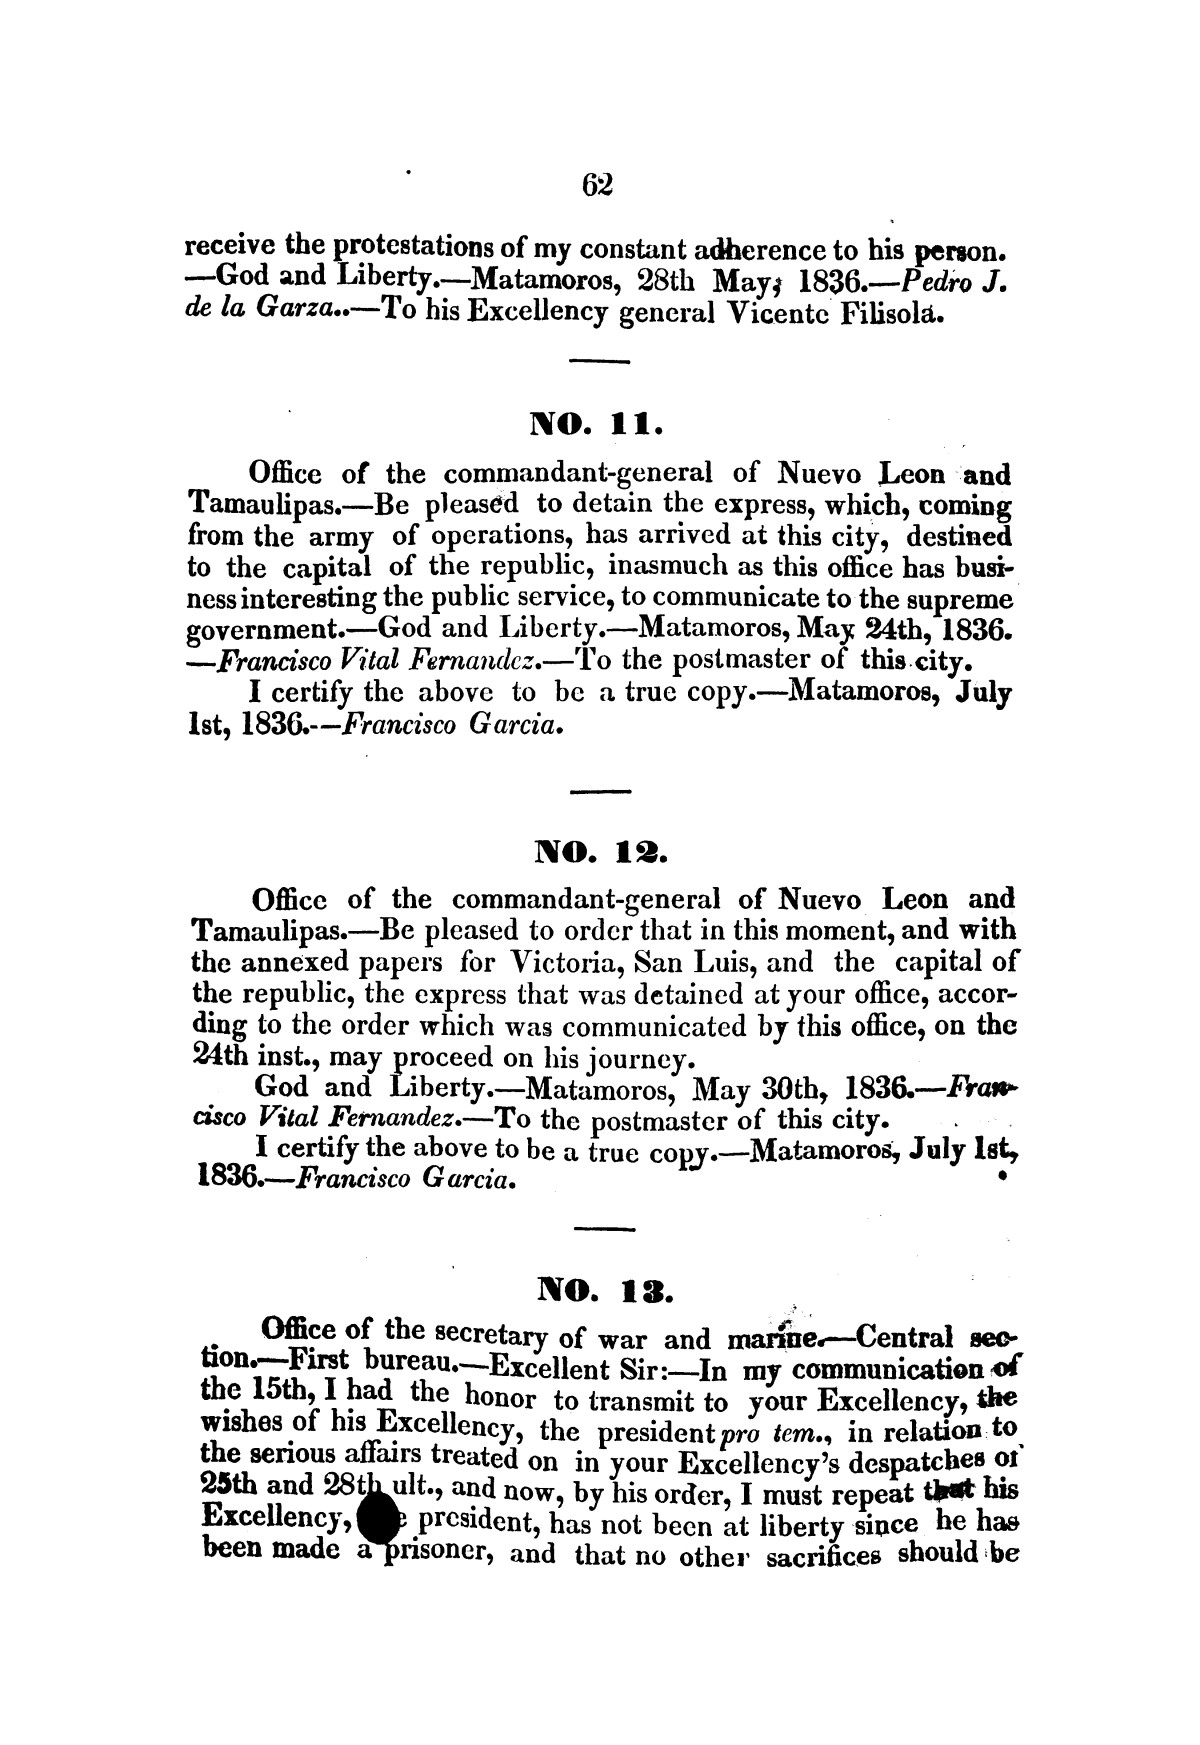 Evacuation of Texas : translation of the Representation addressed to the supreme government / by Vicente Filisola, in defence of his honor, and explanation of his operations as commander-in-chief of the army against Texas.                                                                                                      [Sequence #]: 65 of 72